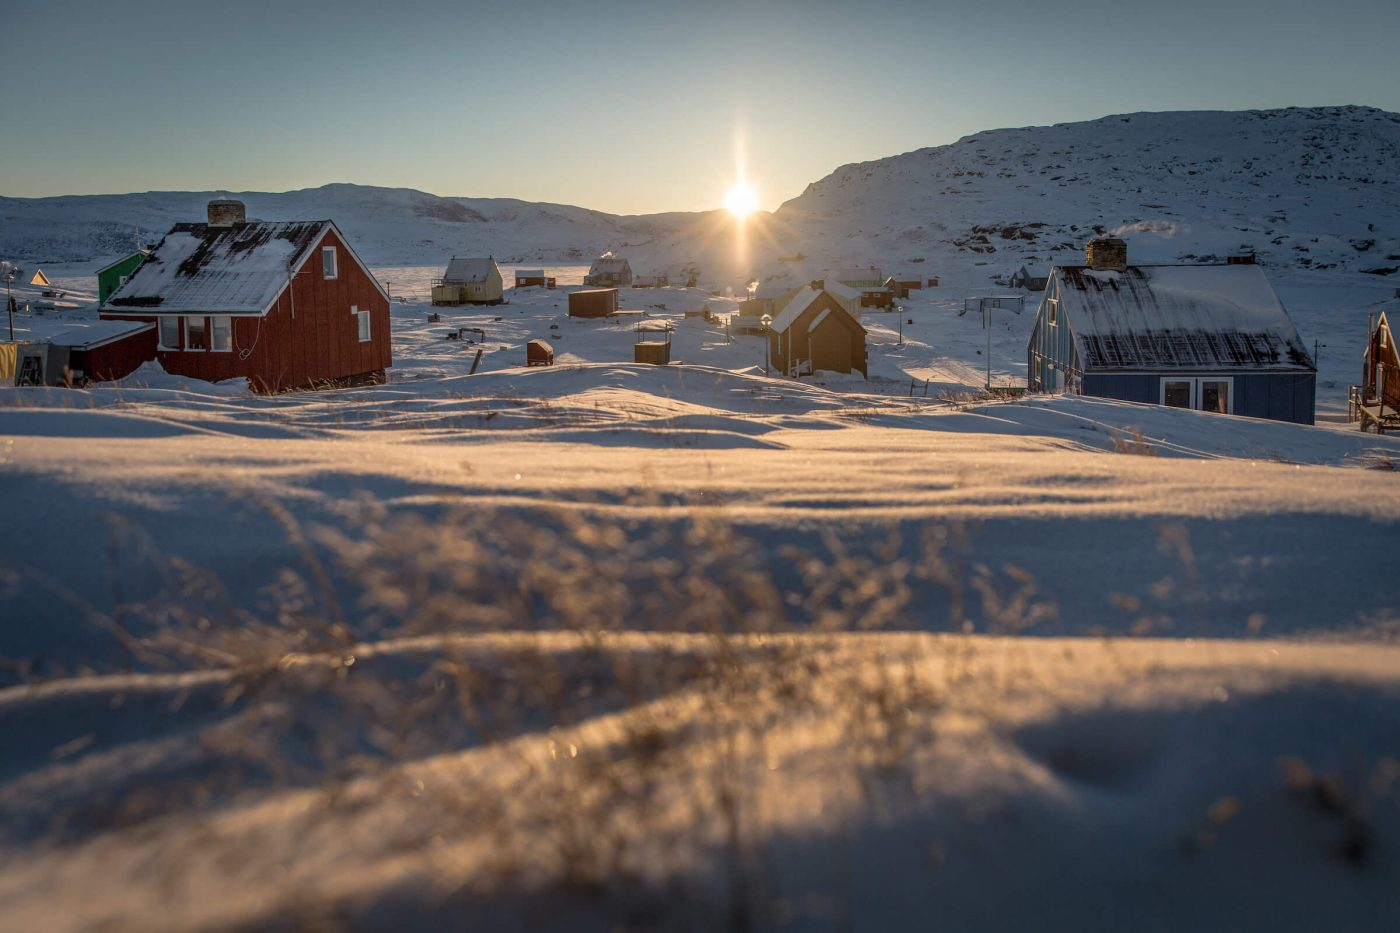 Sunrise over the village Oqaatsut in North Greenland near Ilulissat in the Disko Bay. Photo by Mads Pihl - Visit Greenland